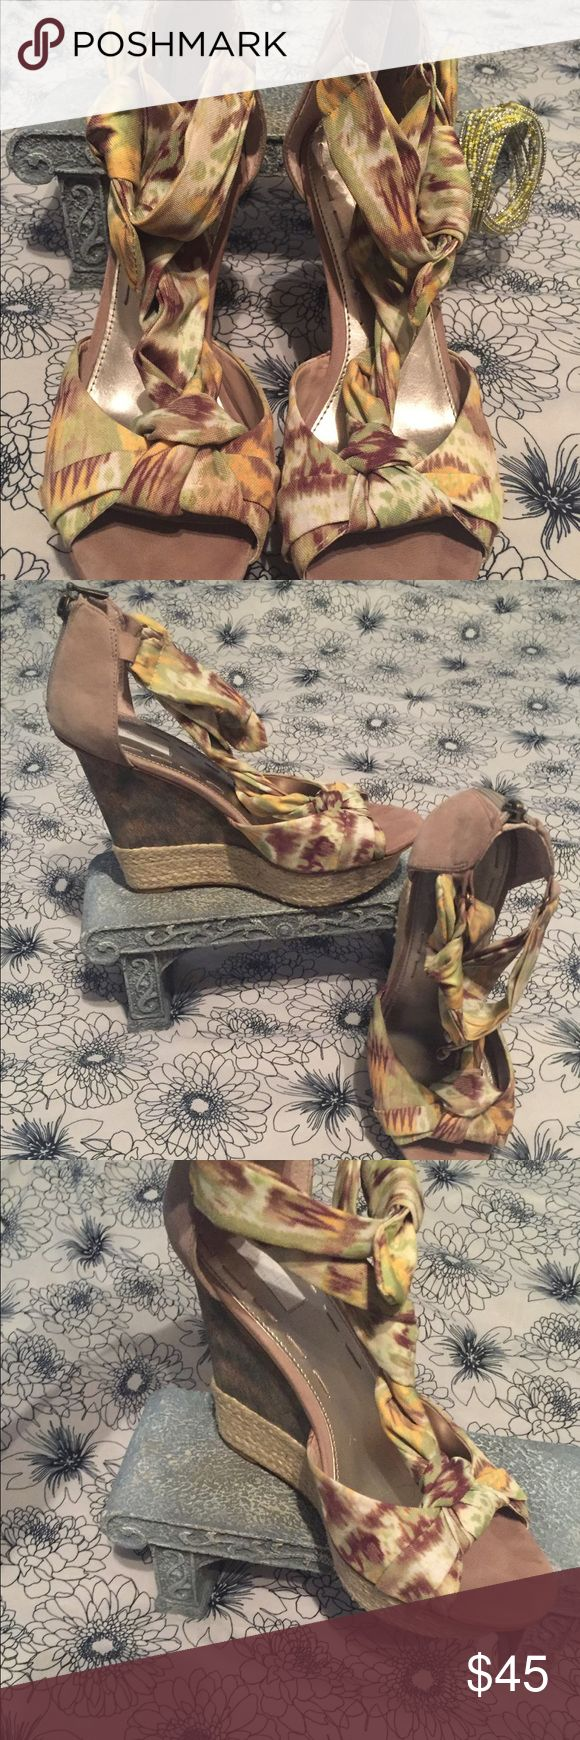 Rachel Roy leather wedge shoes Super cute leather base wedges with multiple colored design. Zip up heel area with bow. Barely worn no signs of wear on shoe except MINOR  scuffs on bottom soles of shoes Rachel Roy Shoes Platforms